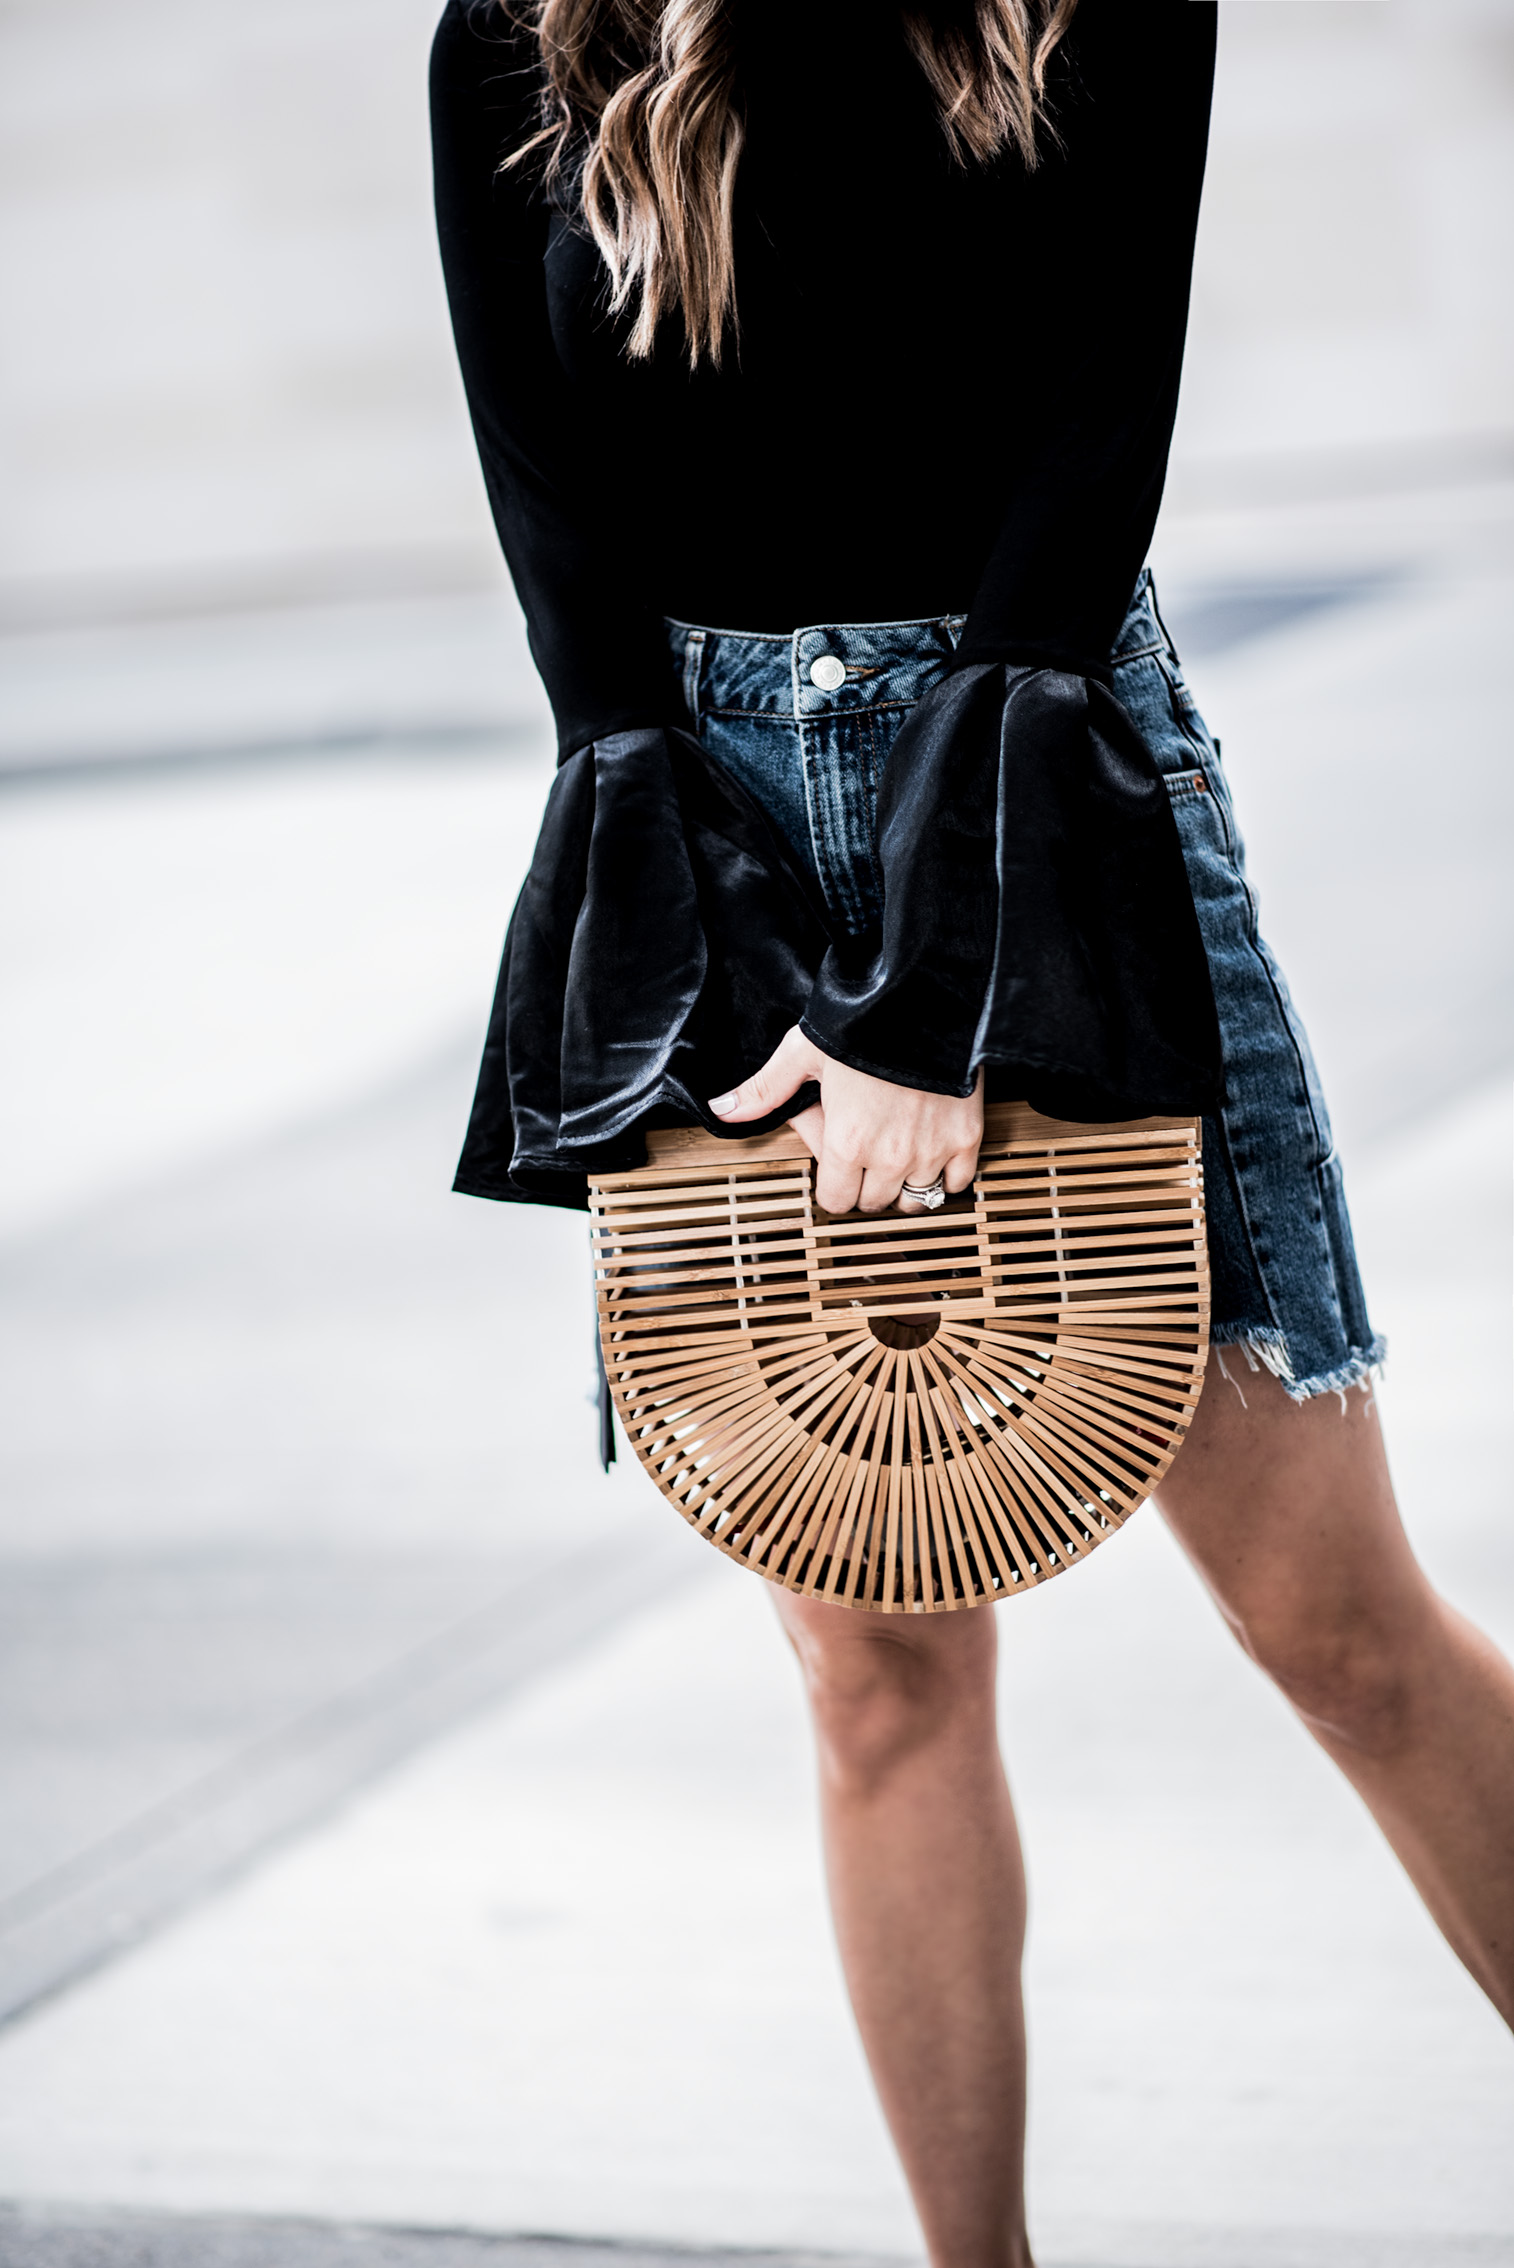 Houston fashion and lifestyle blogger Tiffany Jais wearing a denim skirt from Topshop and a bell sleeve top | Outfit ideas for spring, cult gaia, summer streetstyle